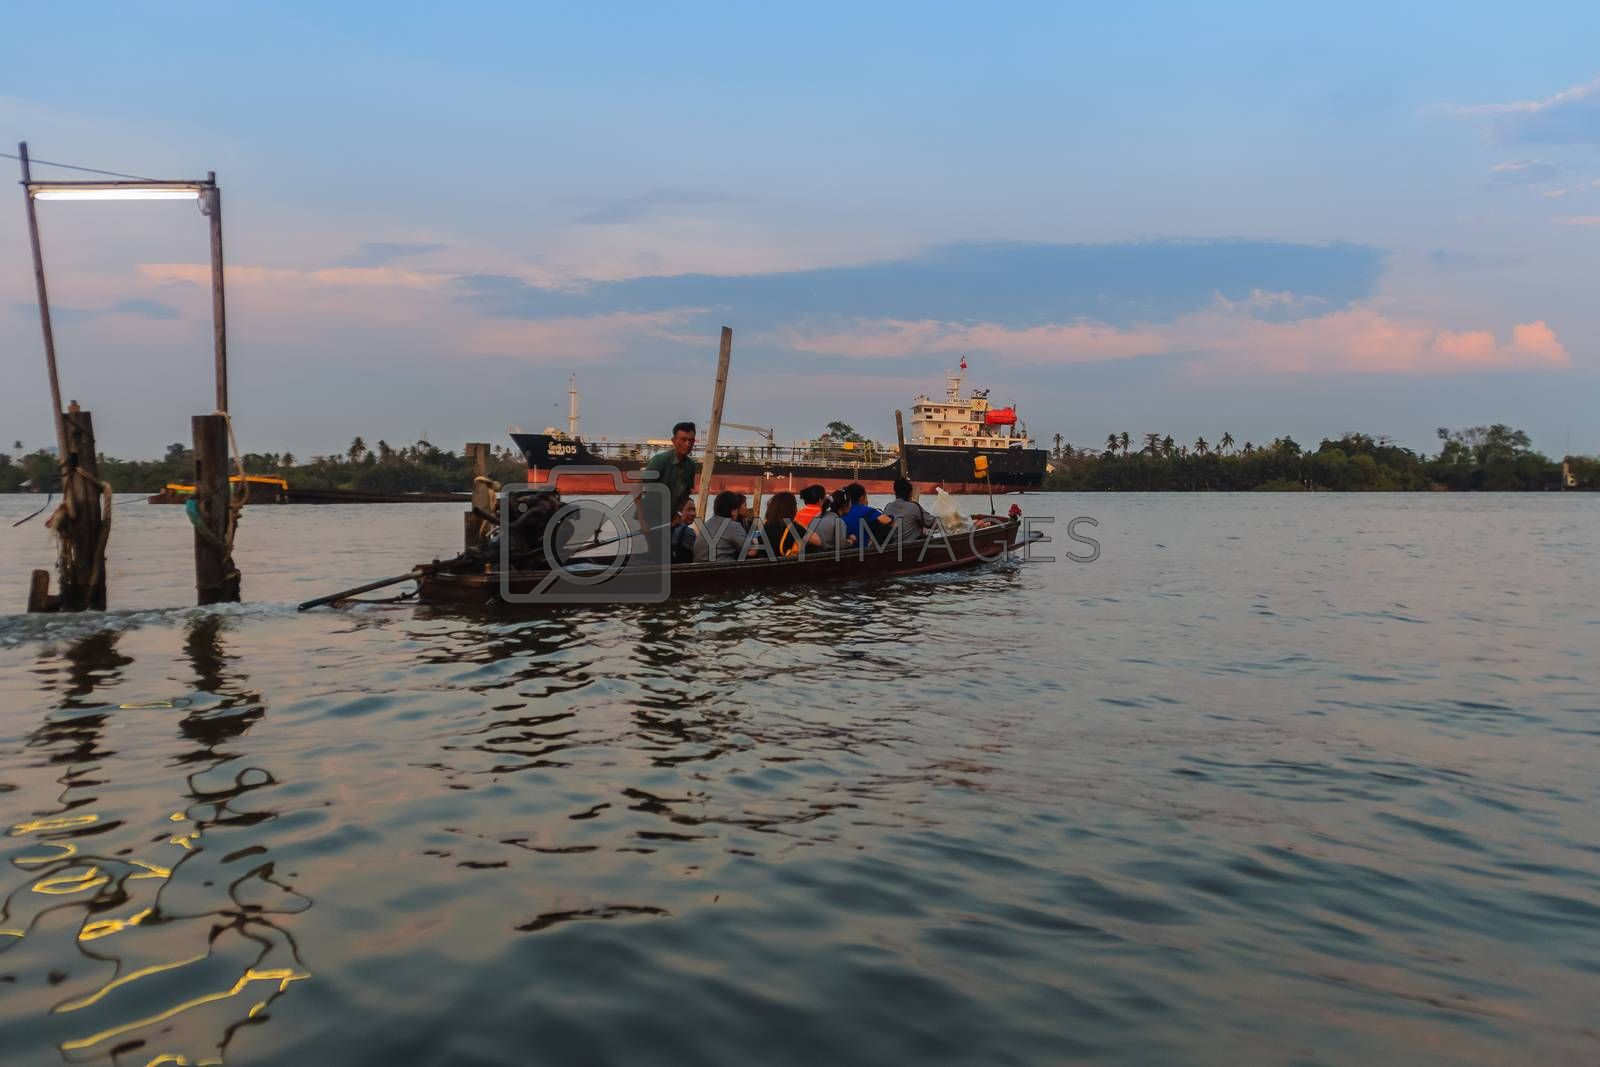 Bangkok, Thailand - March 14, 2017: Slow lifestyle of villagers use a small boat service across the Chao Phraya river at Bang Krachao district pier.